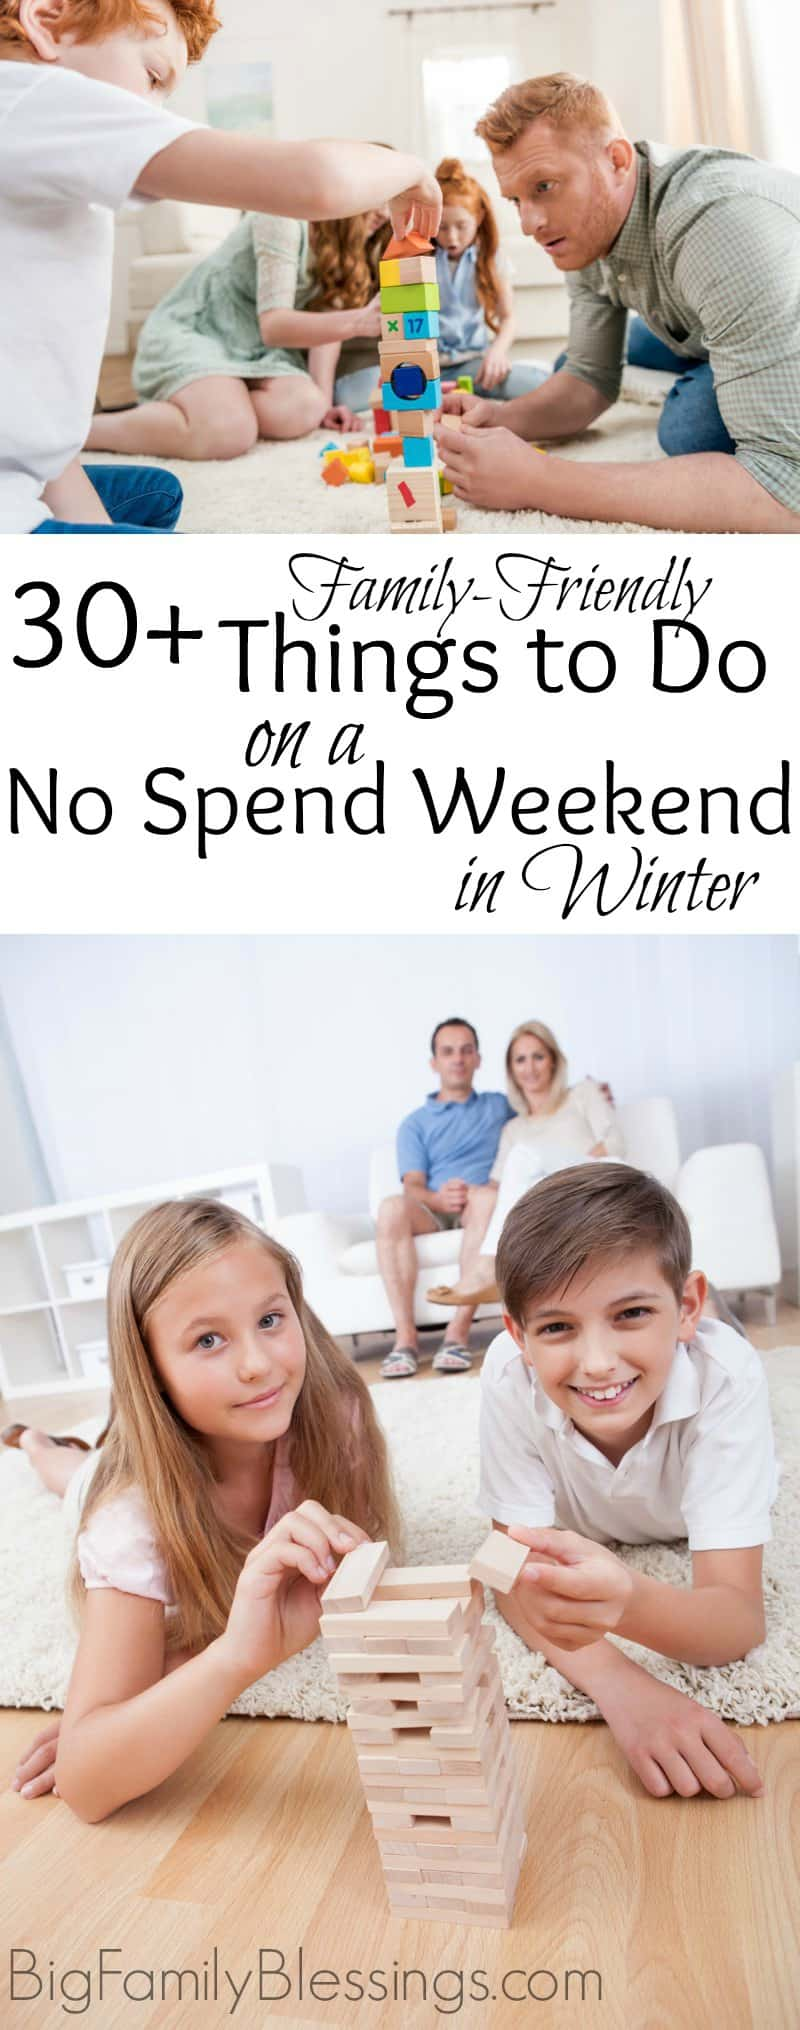 Family Friendly Things to Do on a No Spend Weekend in Winter. 30+ family friendly activities for cold winter days on a no spend weekend.